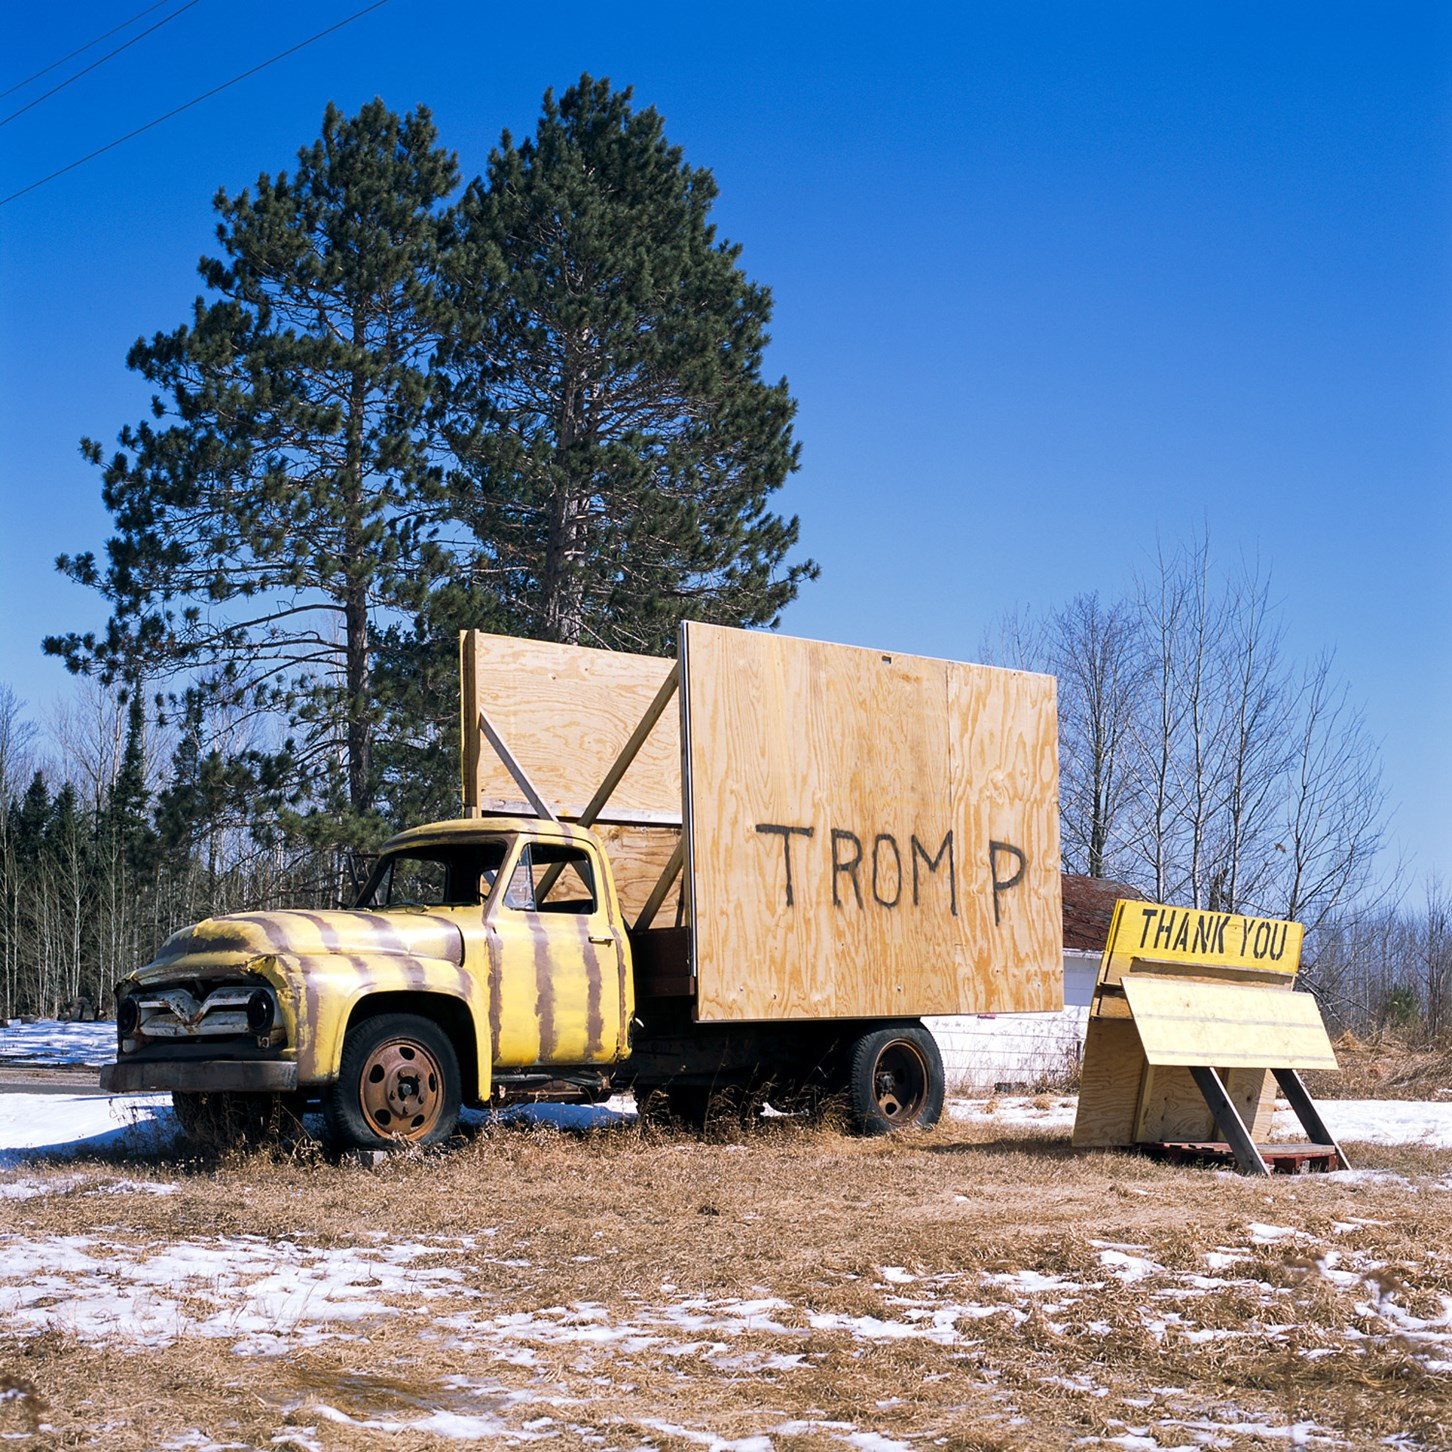 Tromp - Thank You, Cotton, Minnesota, April 2018